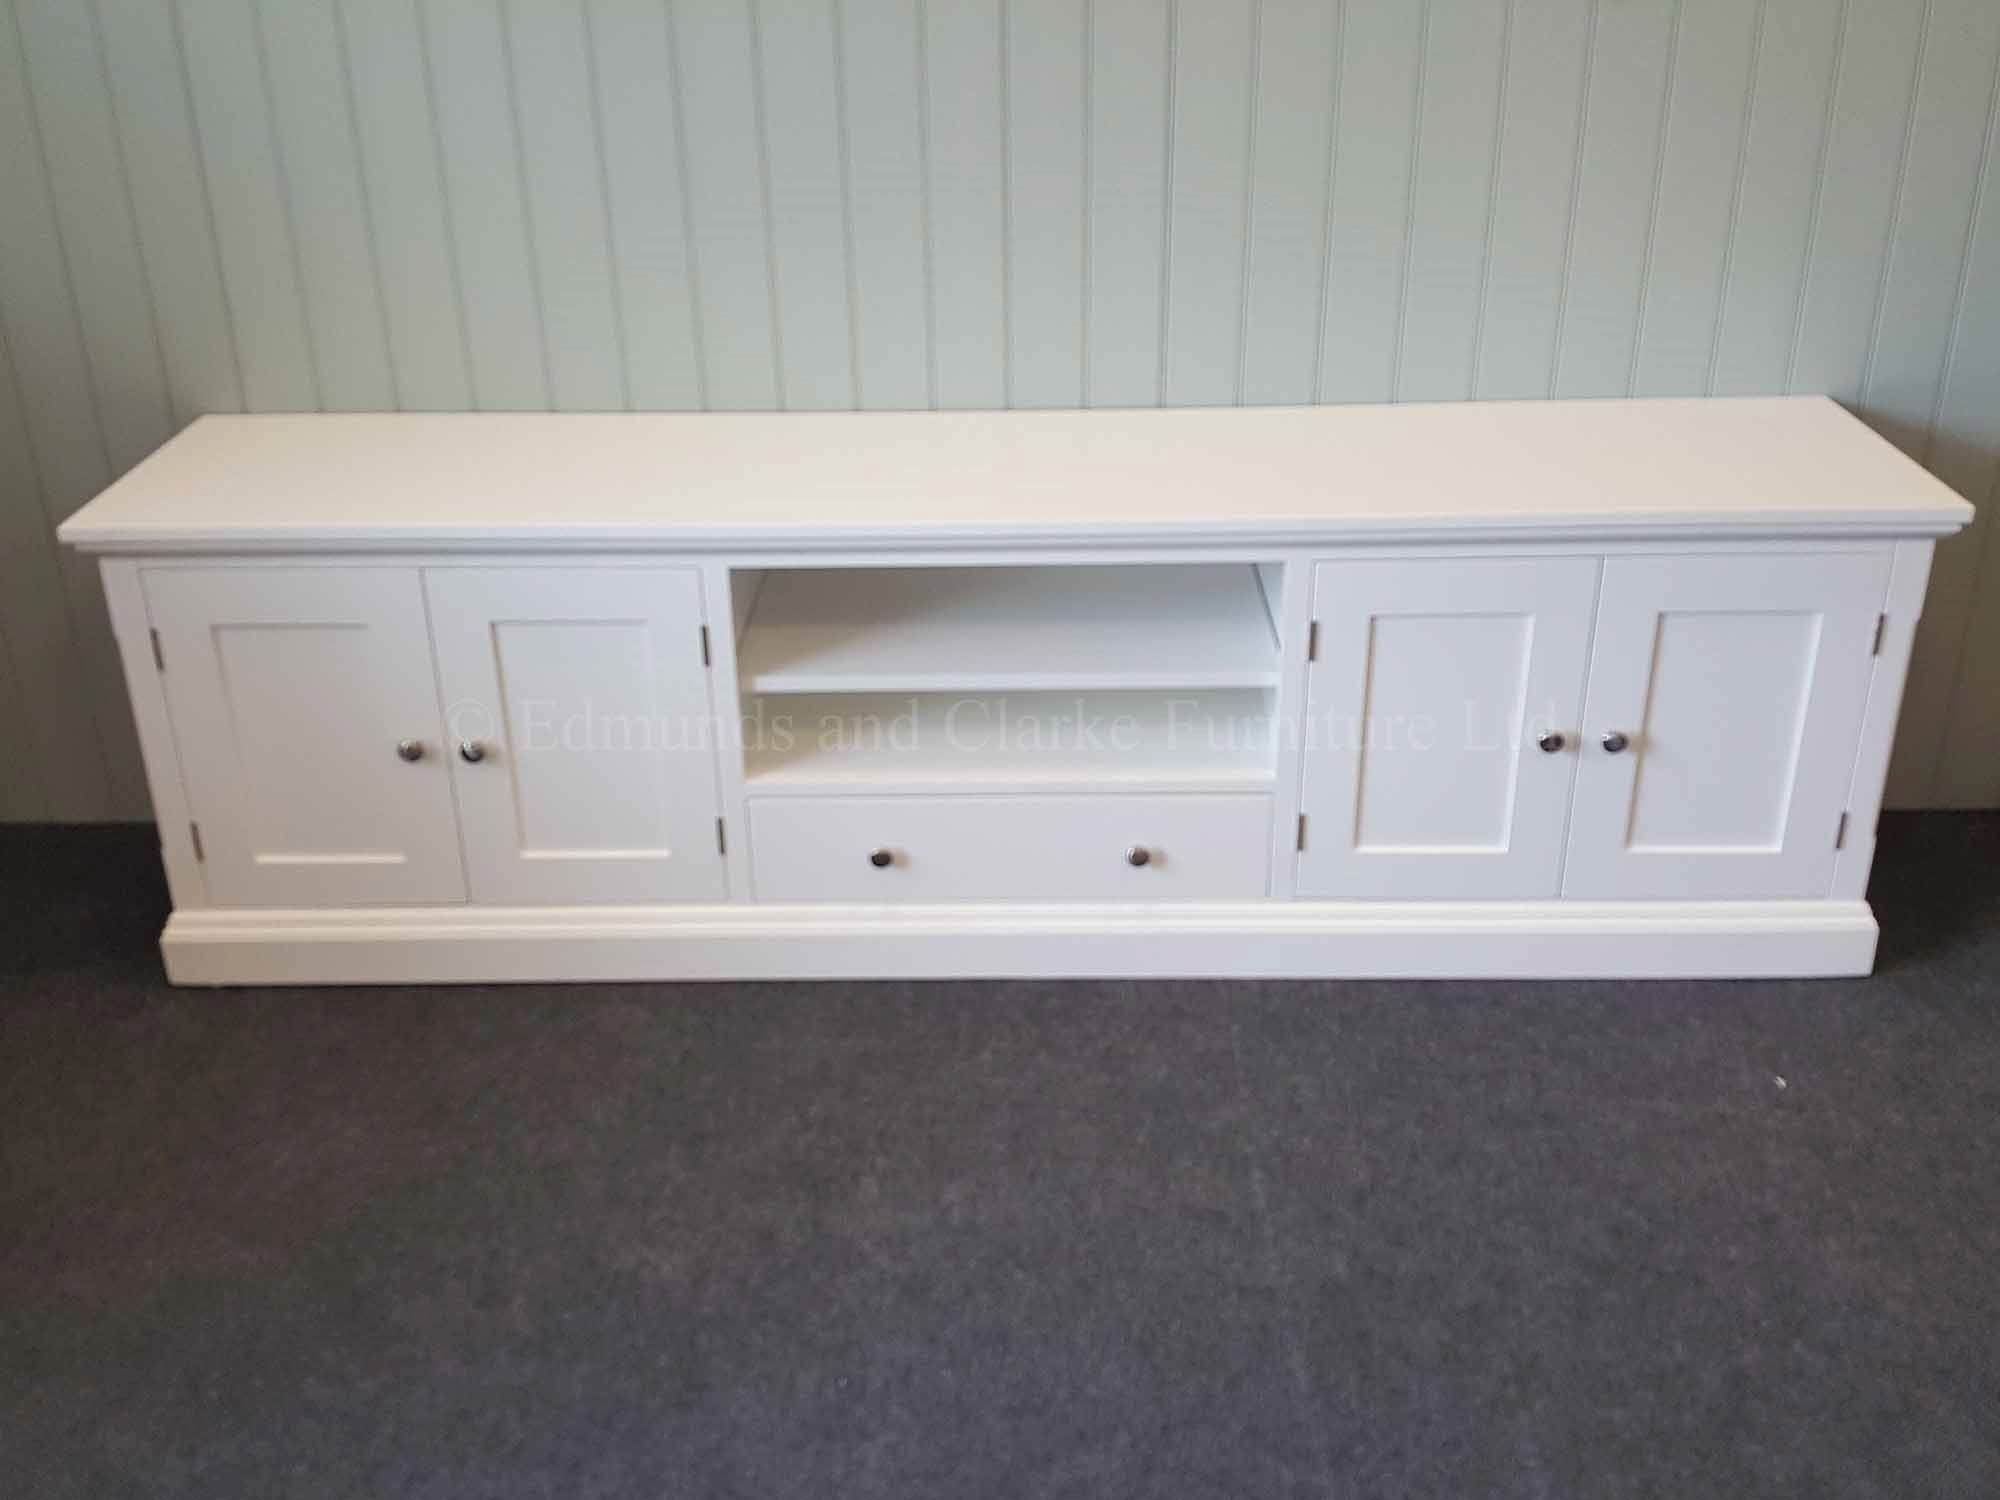 Painted white 7 feet Tv entertainment stand